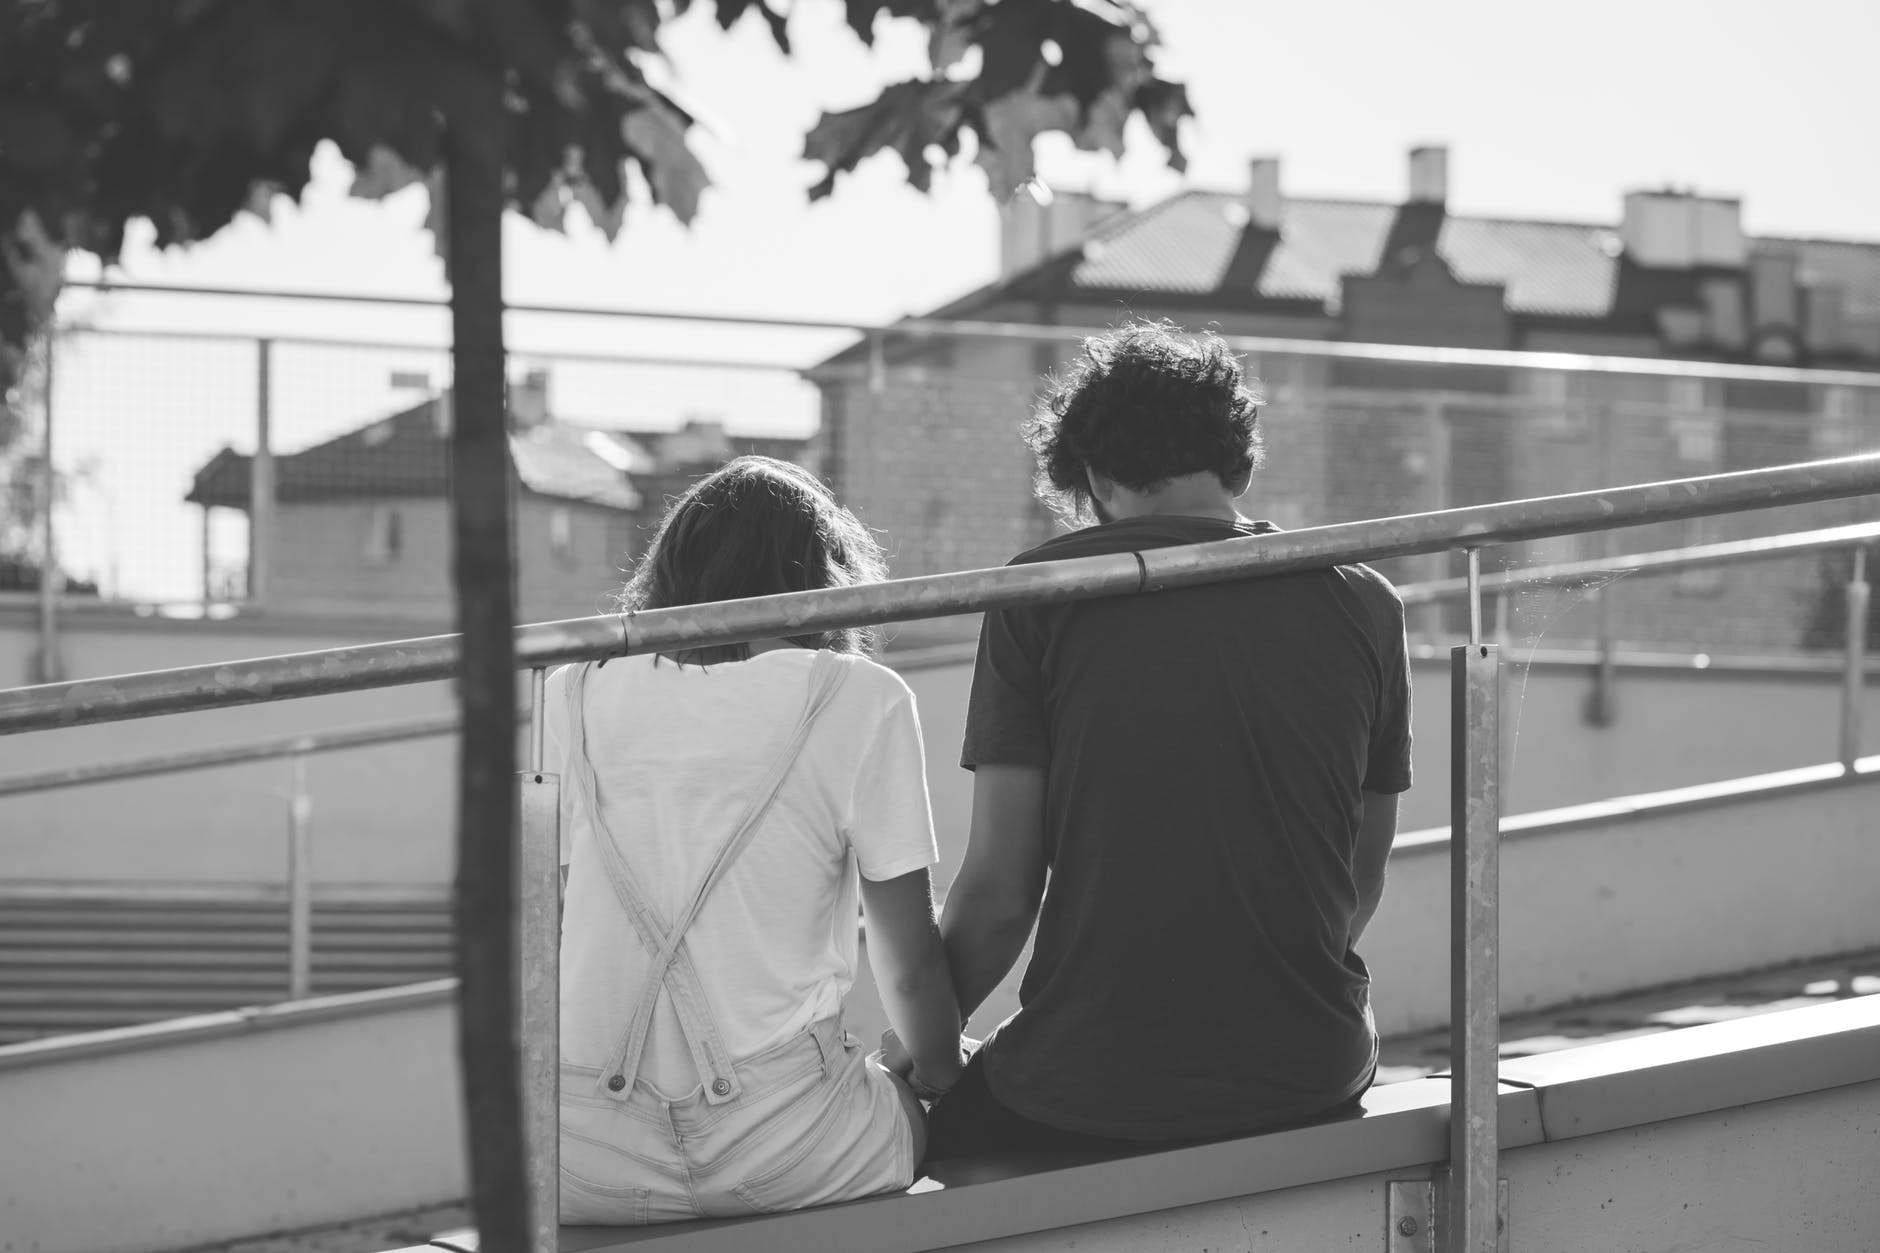 grayscale photo of man and woman sitting on inclined road